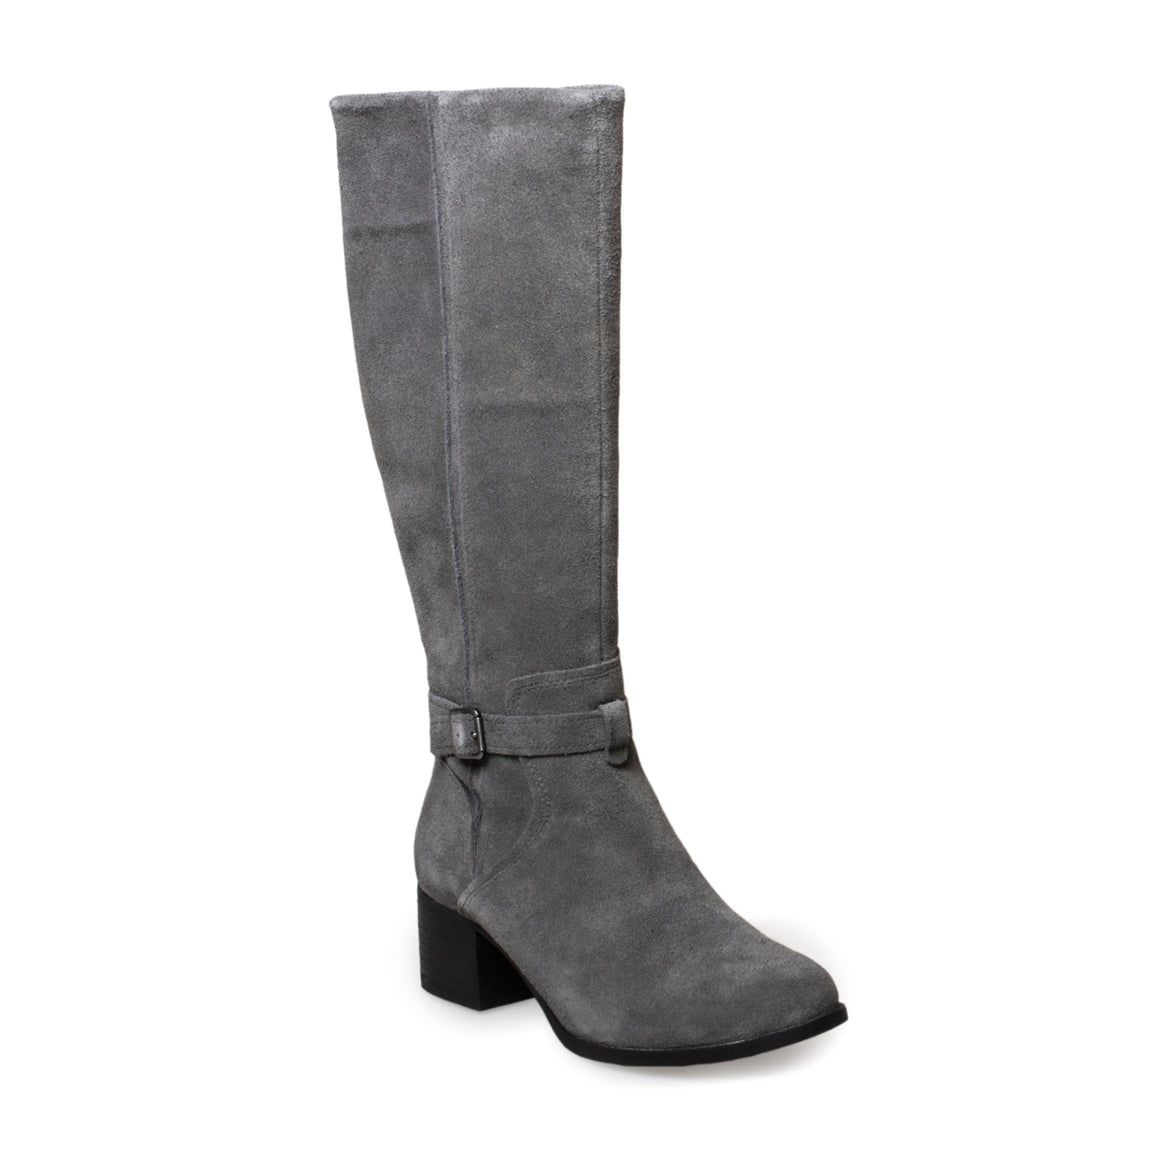 KoolaBurra by UGG Madeley Stone Grey Boots - Women's